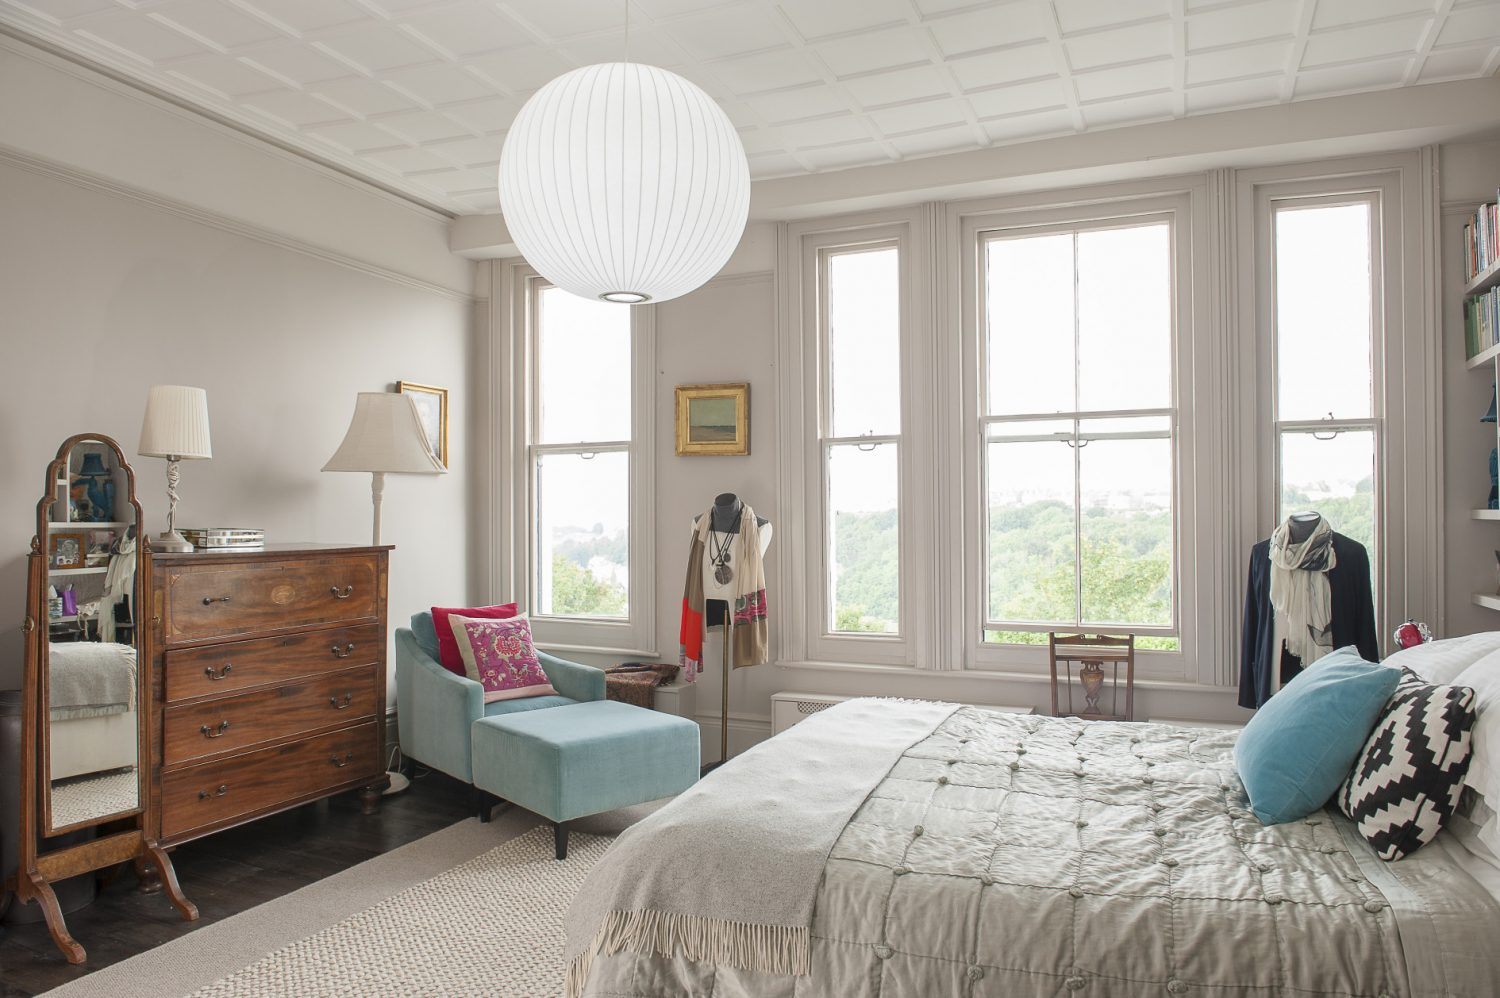 The master bedroom has magnificent views over Hastings Old Town and the sea, all the way to Beachy Head. The chaise longue is from Graham & Green and the mannequin was another find at Retrouvius